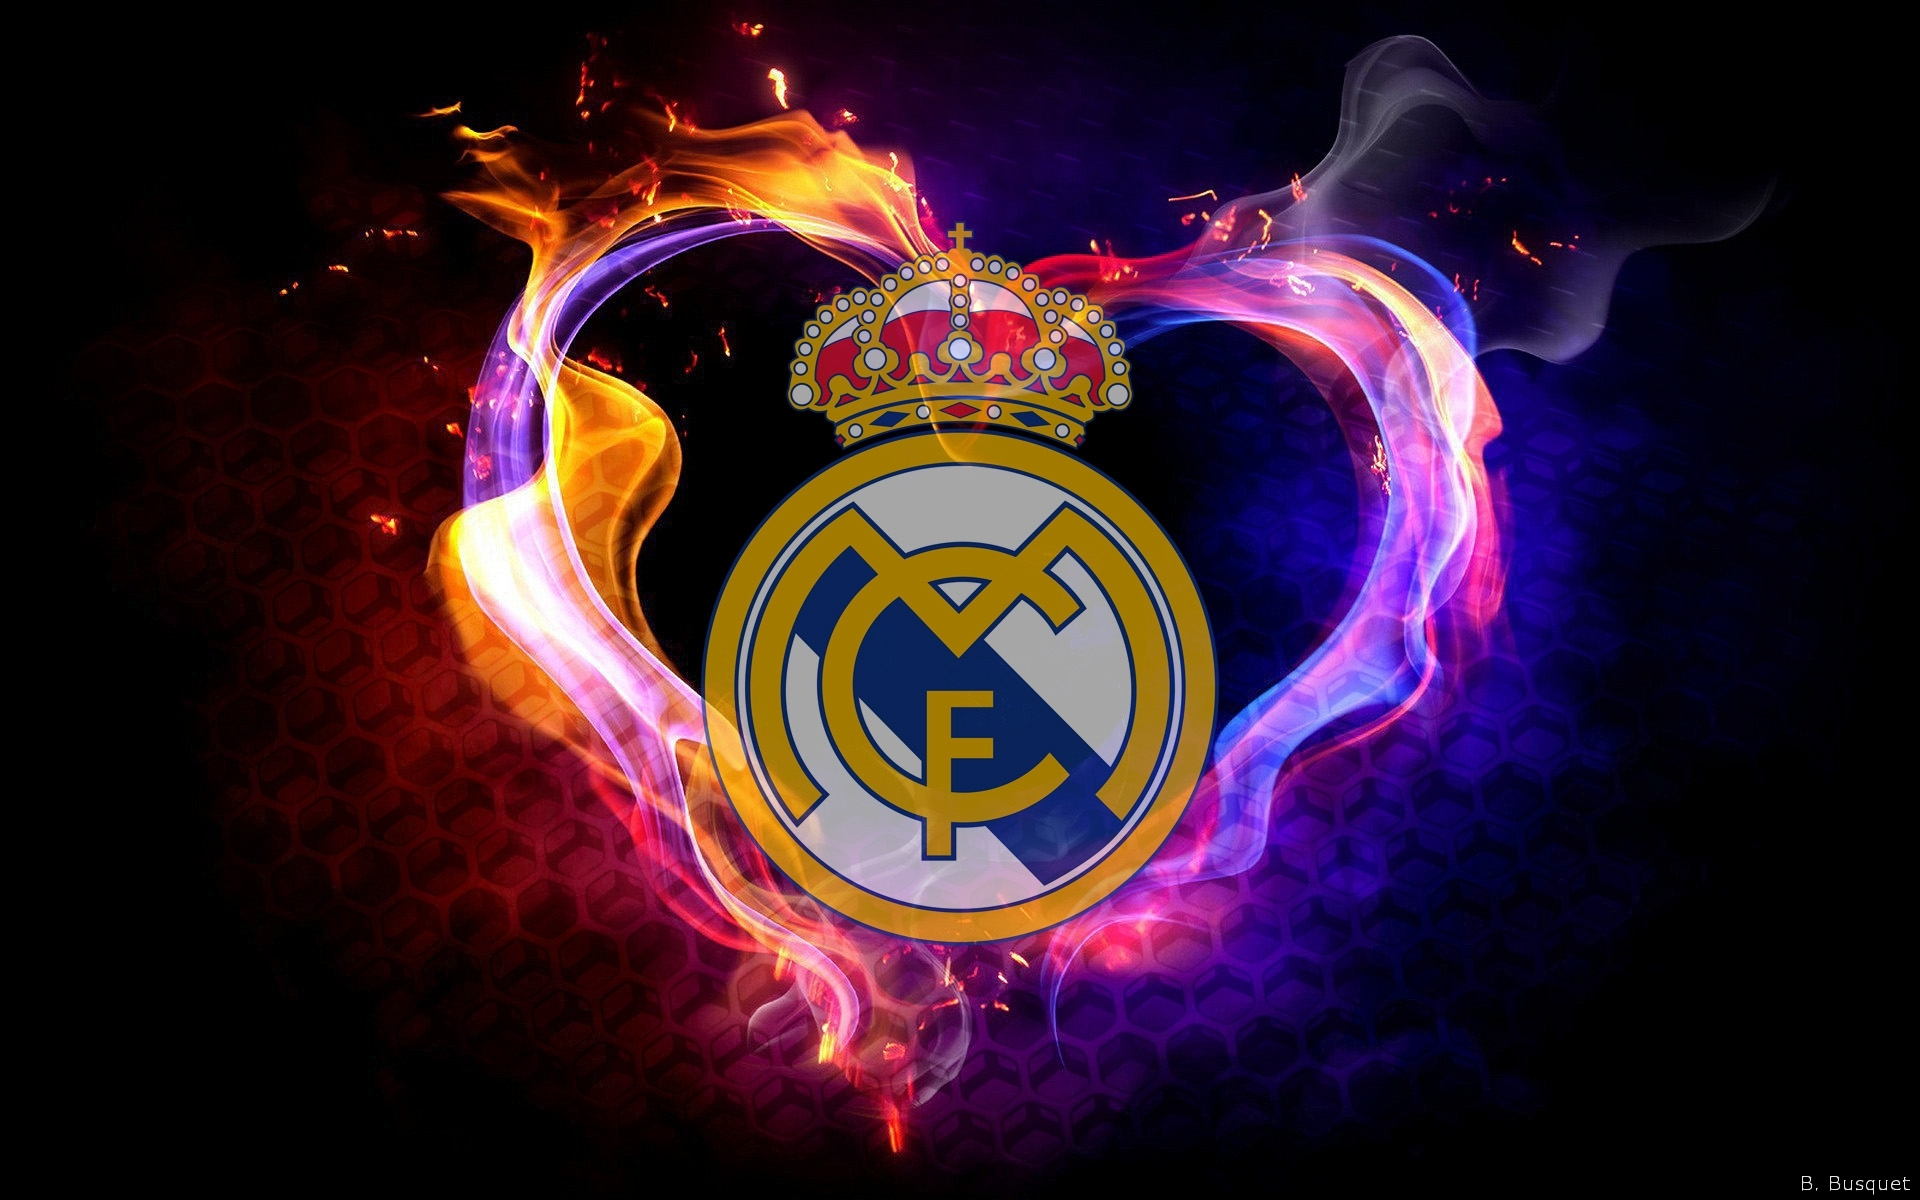 12 real madrid logo hd wallpapers | background images - wallpaper abyss